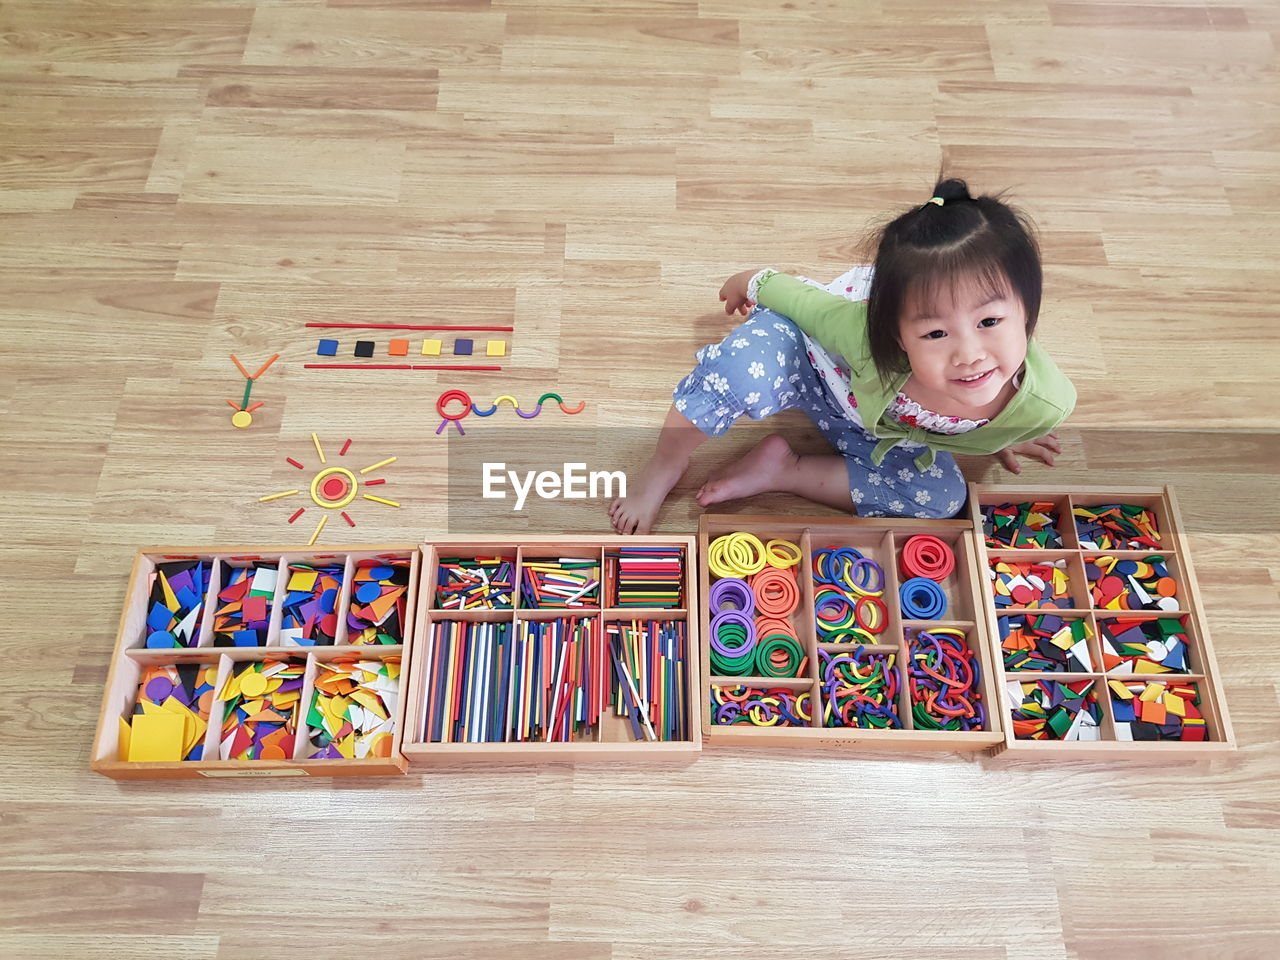 childhood, indoors, child, portrait, front view, multi colored, smiling, emotion, high angle view, flooring, one person, toy, innocence, leisure activity, wood, hardwood floor, girls, happiness, looking at camera, cute, positive emotion